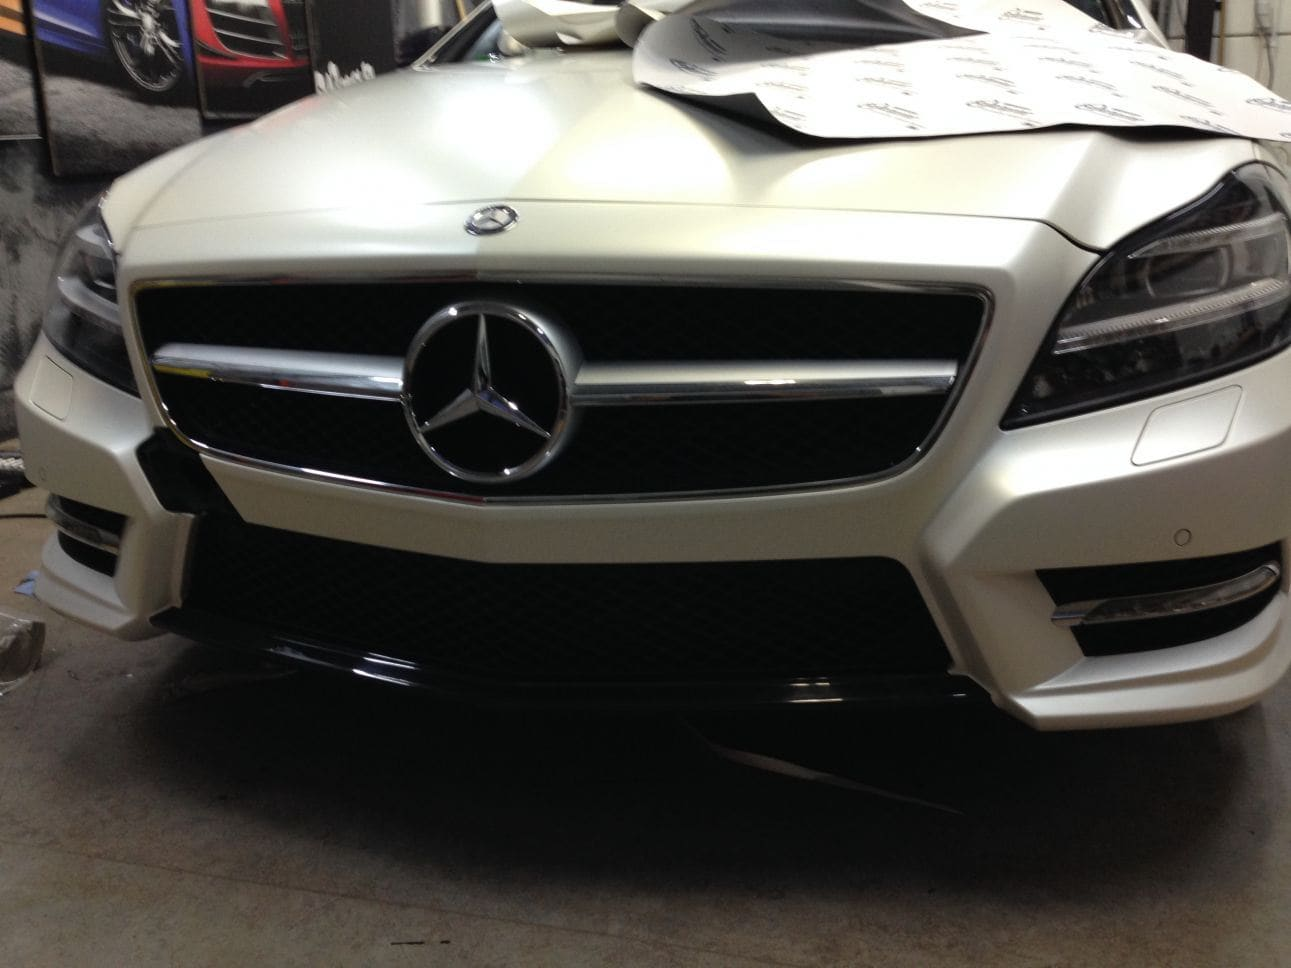 Mercedes CLS met White Satin Pearl Wrap, Carwrapping door Wrapmyride.nu Foto-nr:6186, ©2021